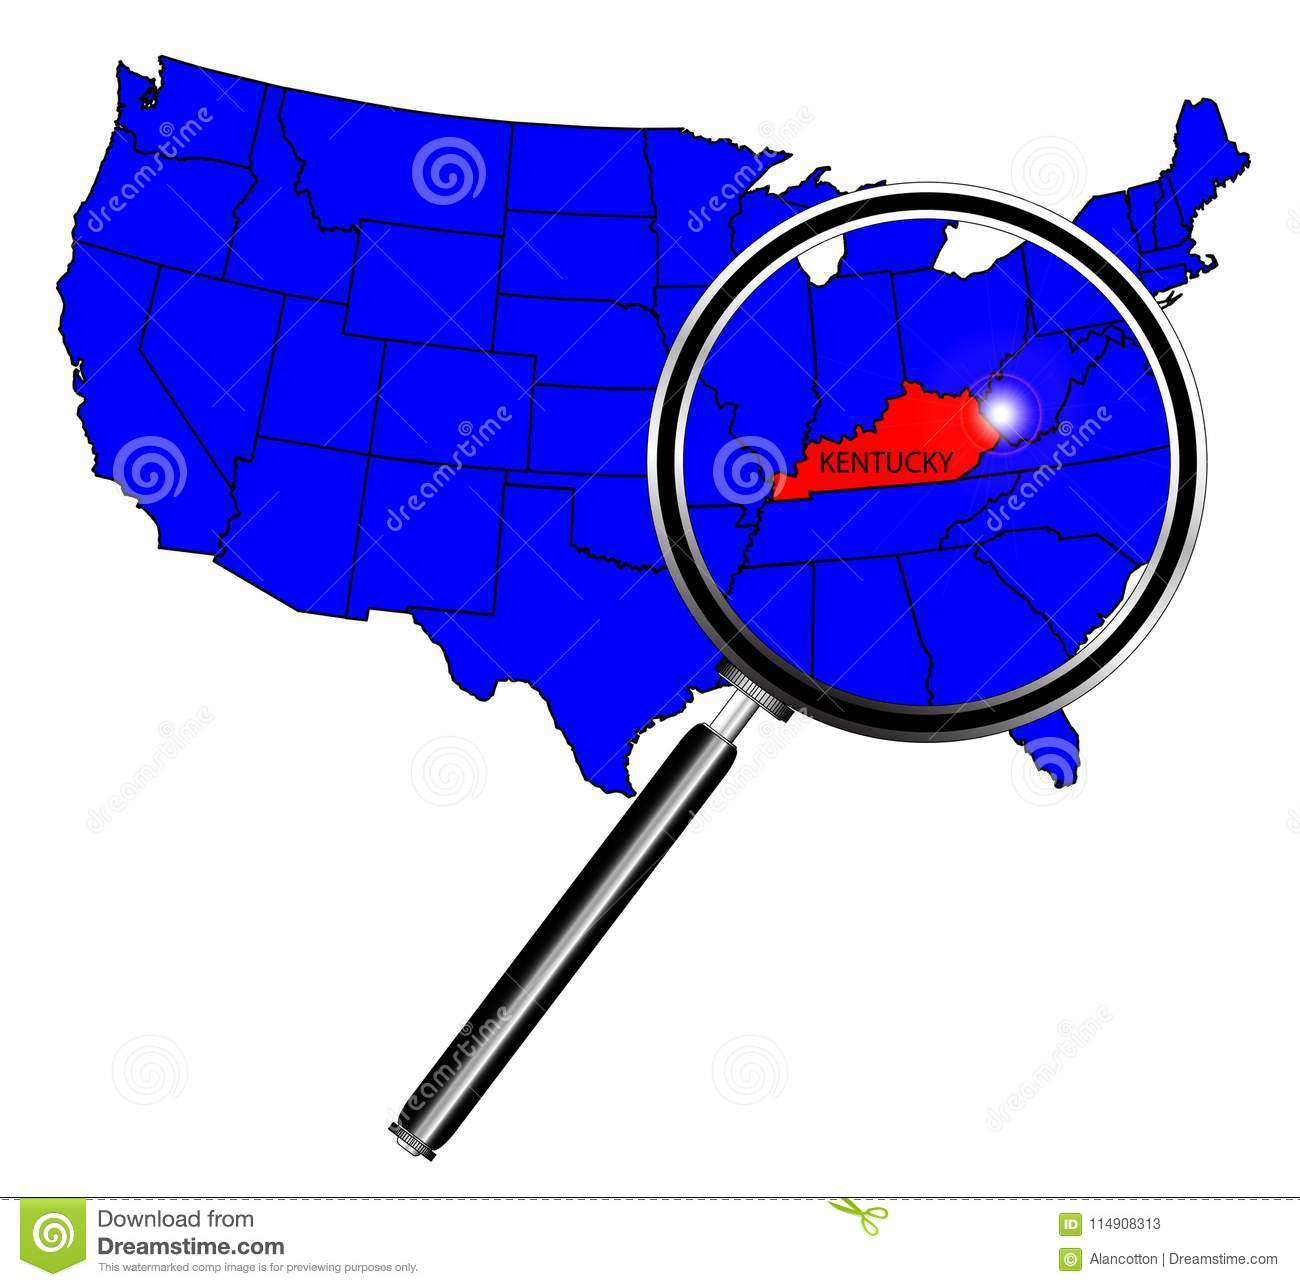 USA State Under A Magnifying Gl State Of Kentucky Stock Vector ... on elevation united states, latitude united states, region united states, longitude united states, culture united states, globe united states, continent united states, mountain united states, geography united states, climate united states,